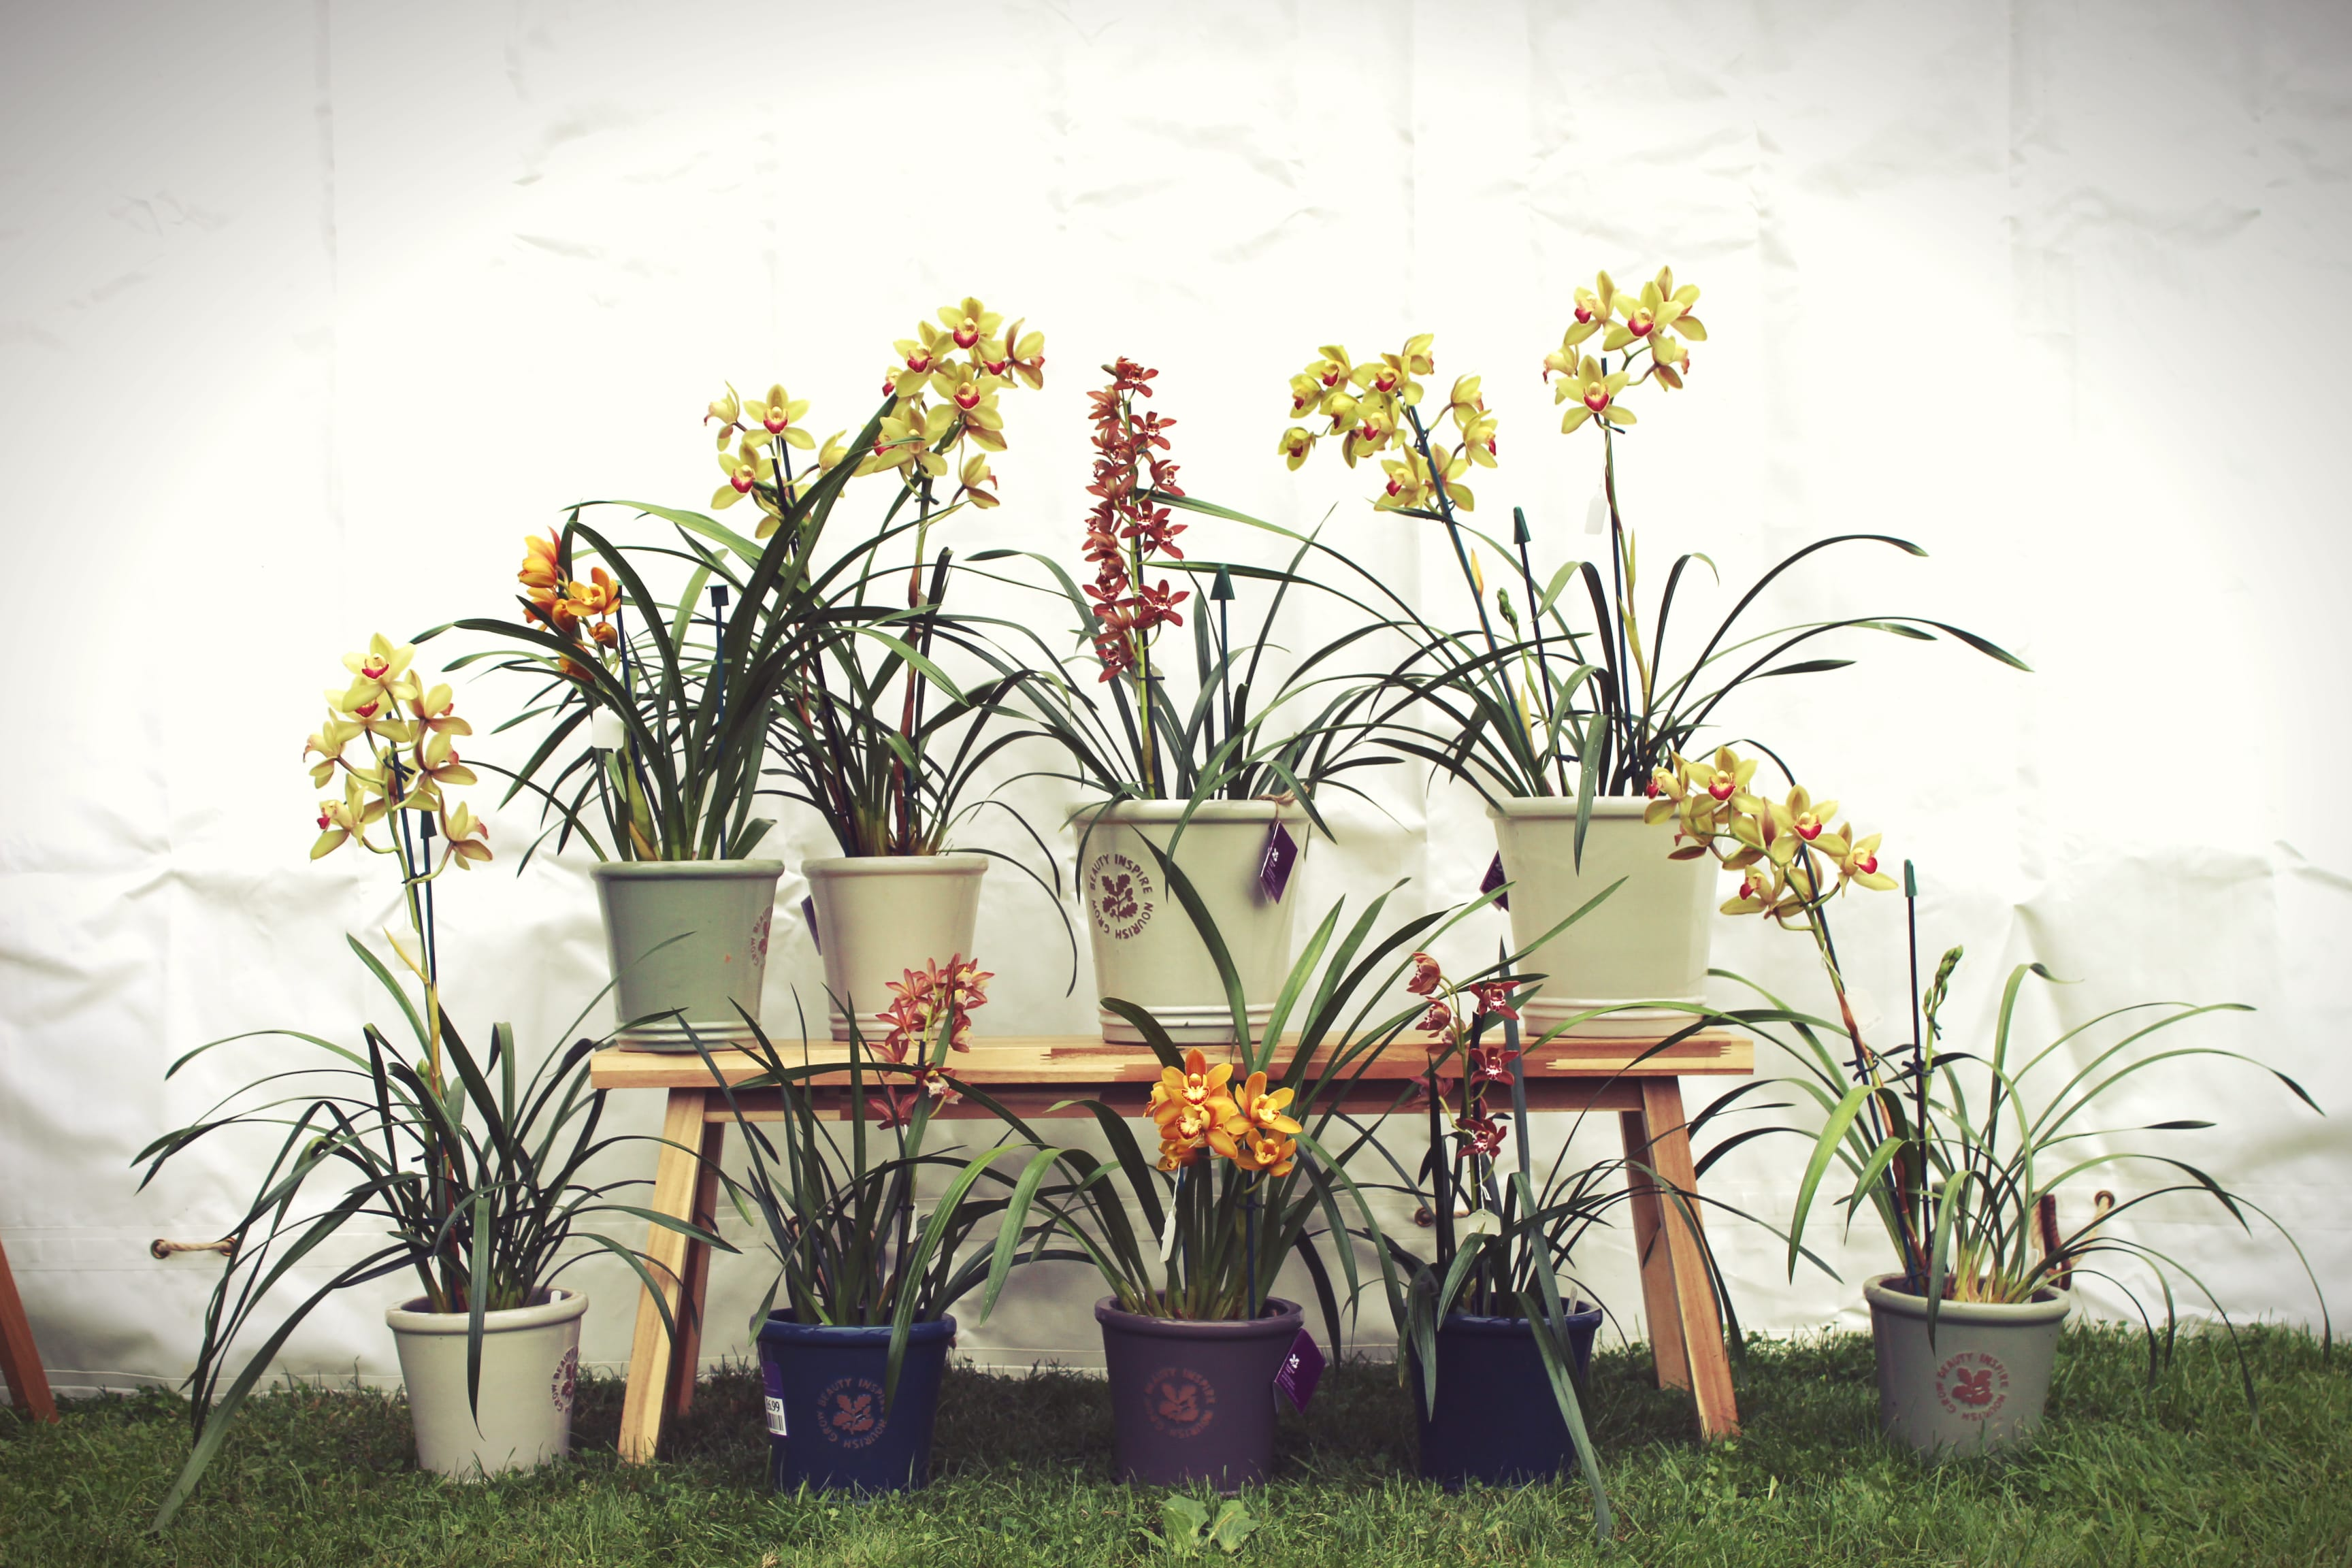 Woodlodge products and Mcbean's Orchids